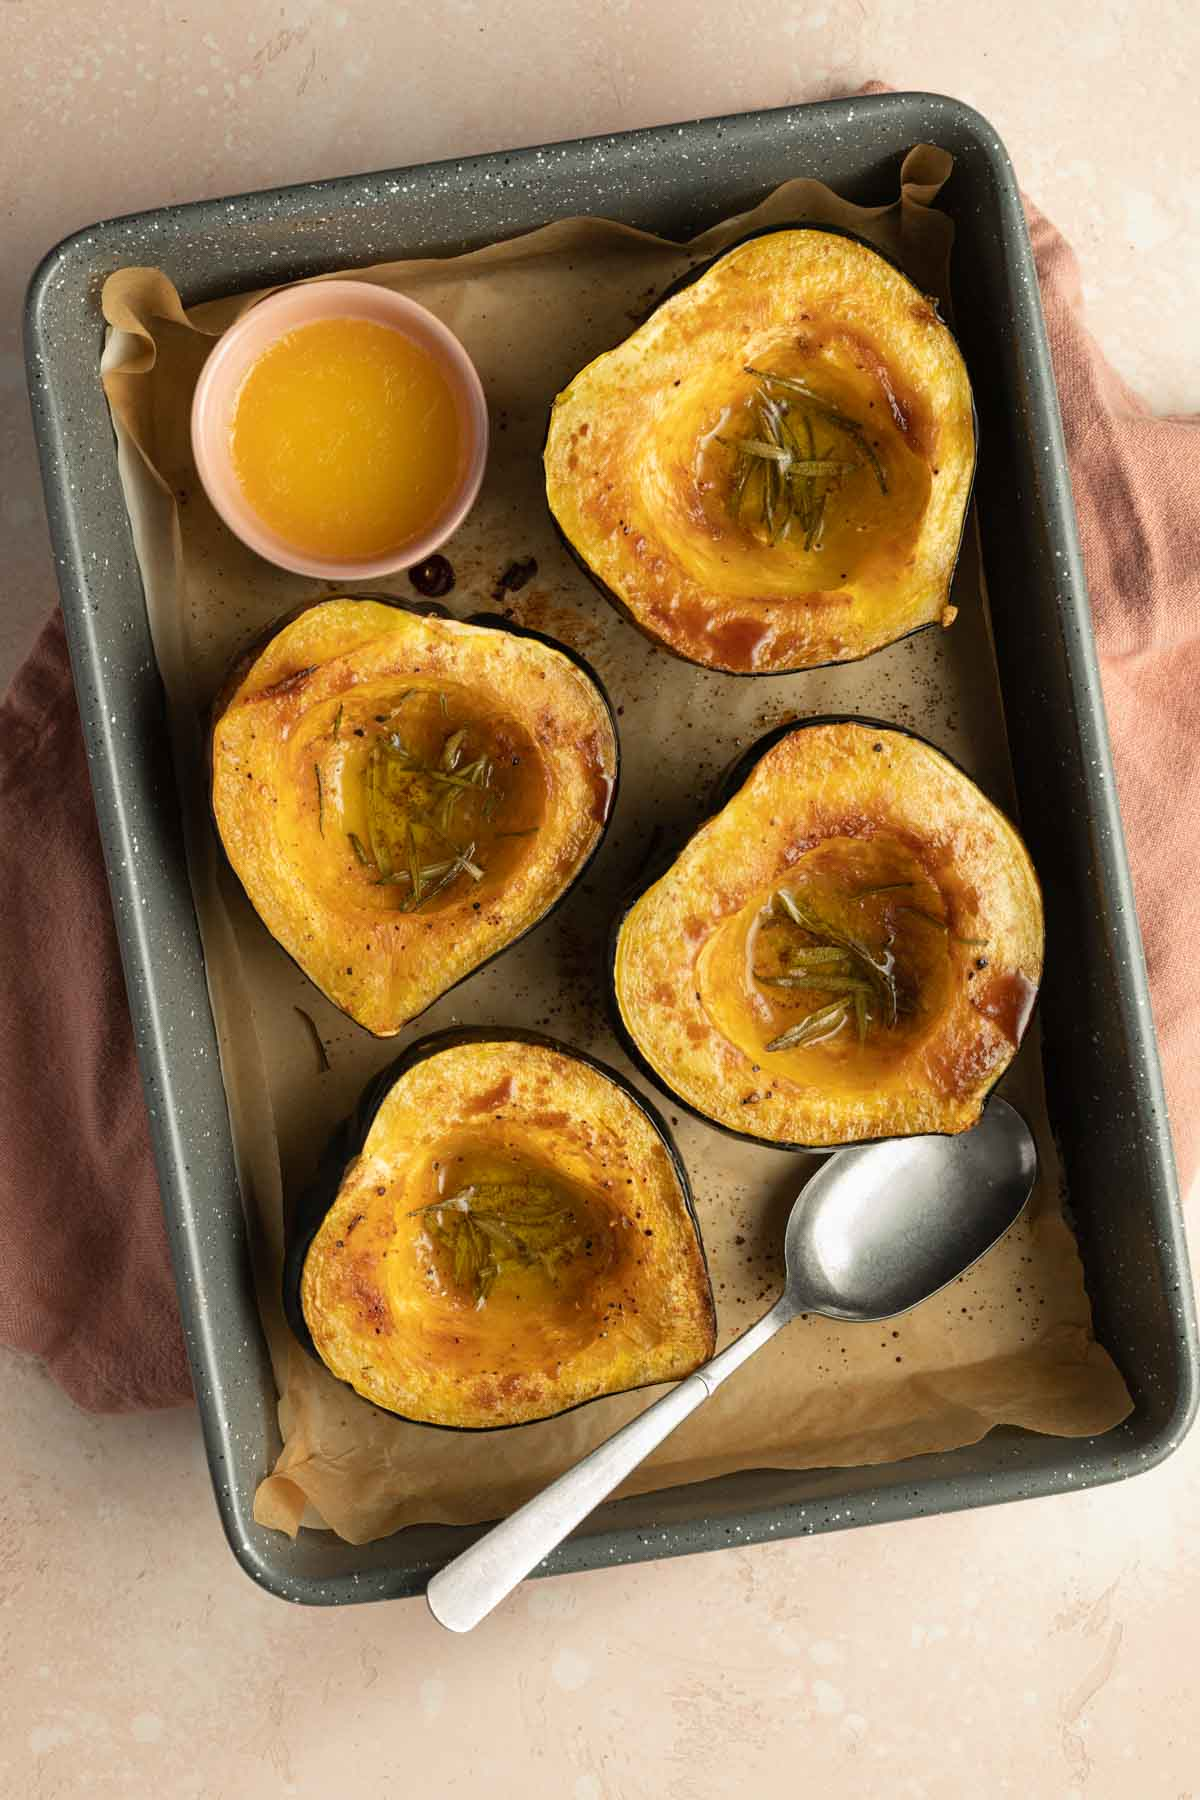 Roasted squash halves in a roasting pan.